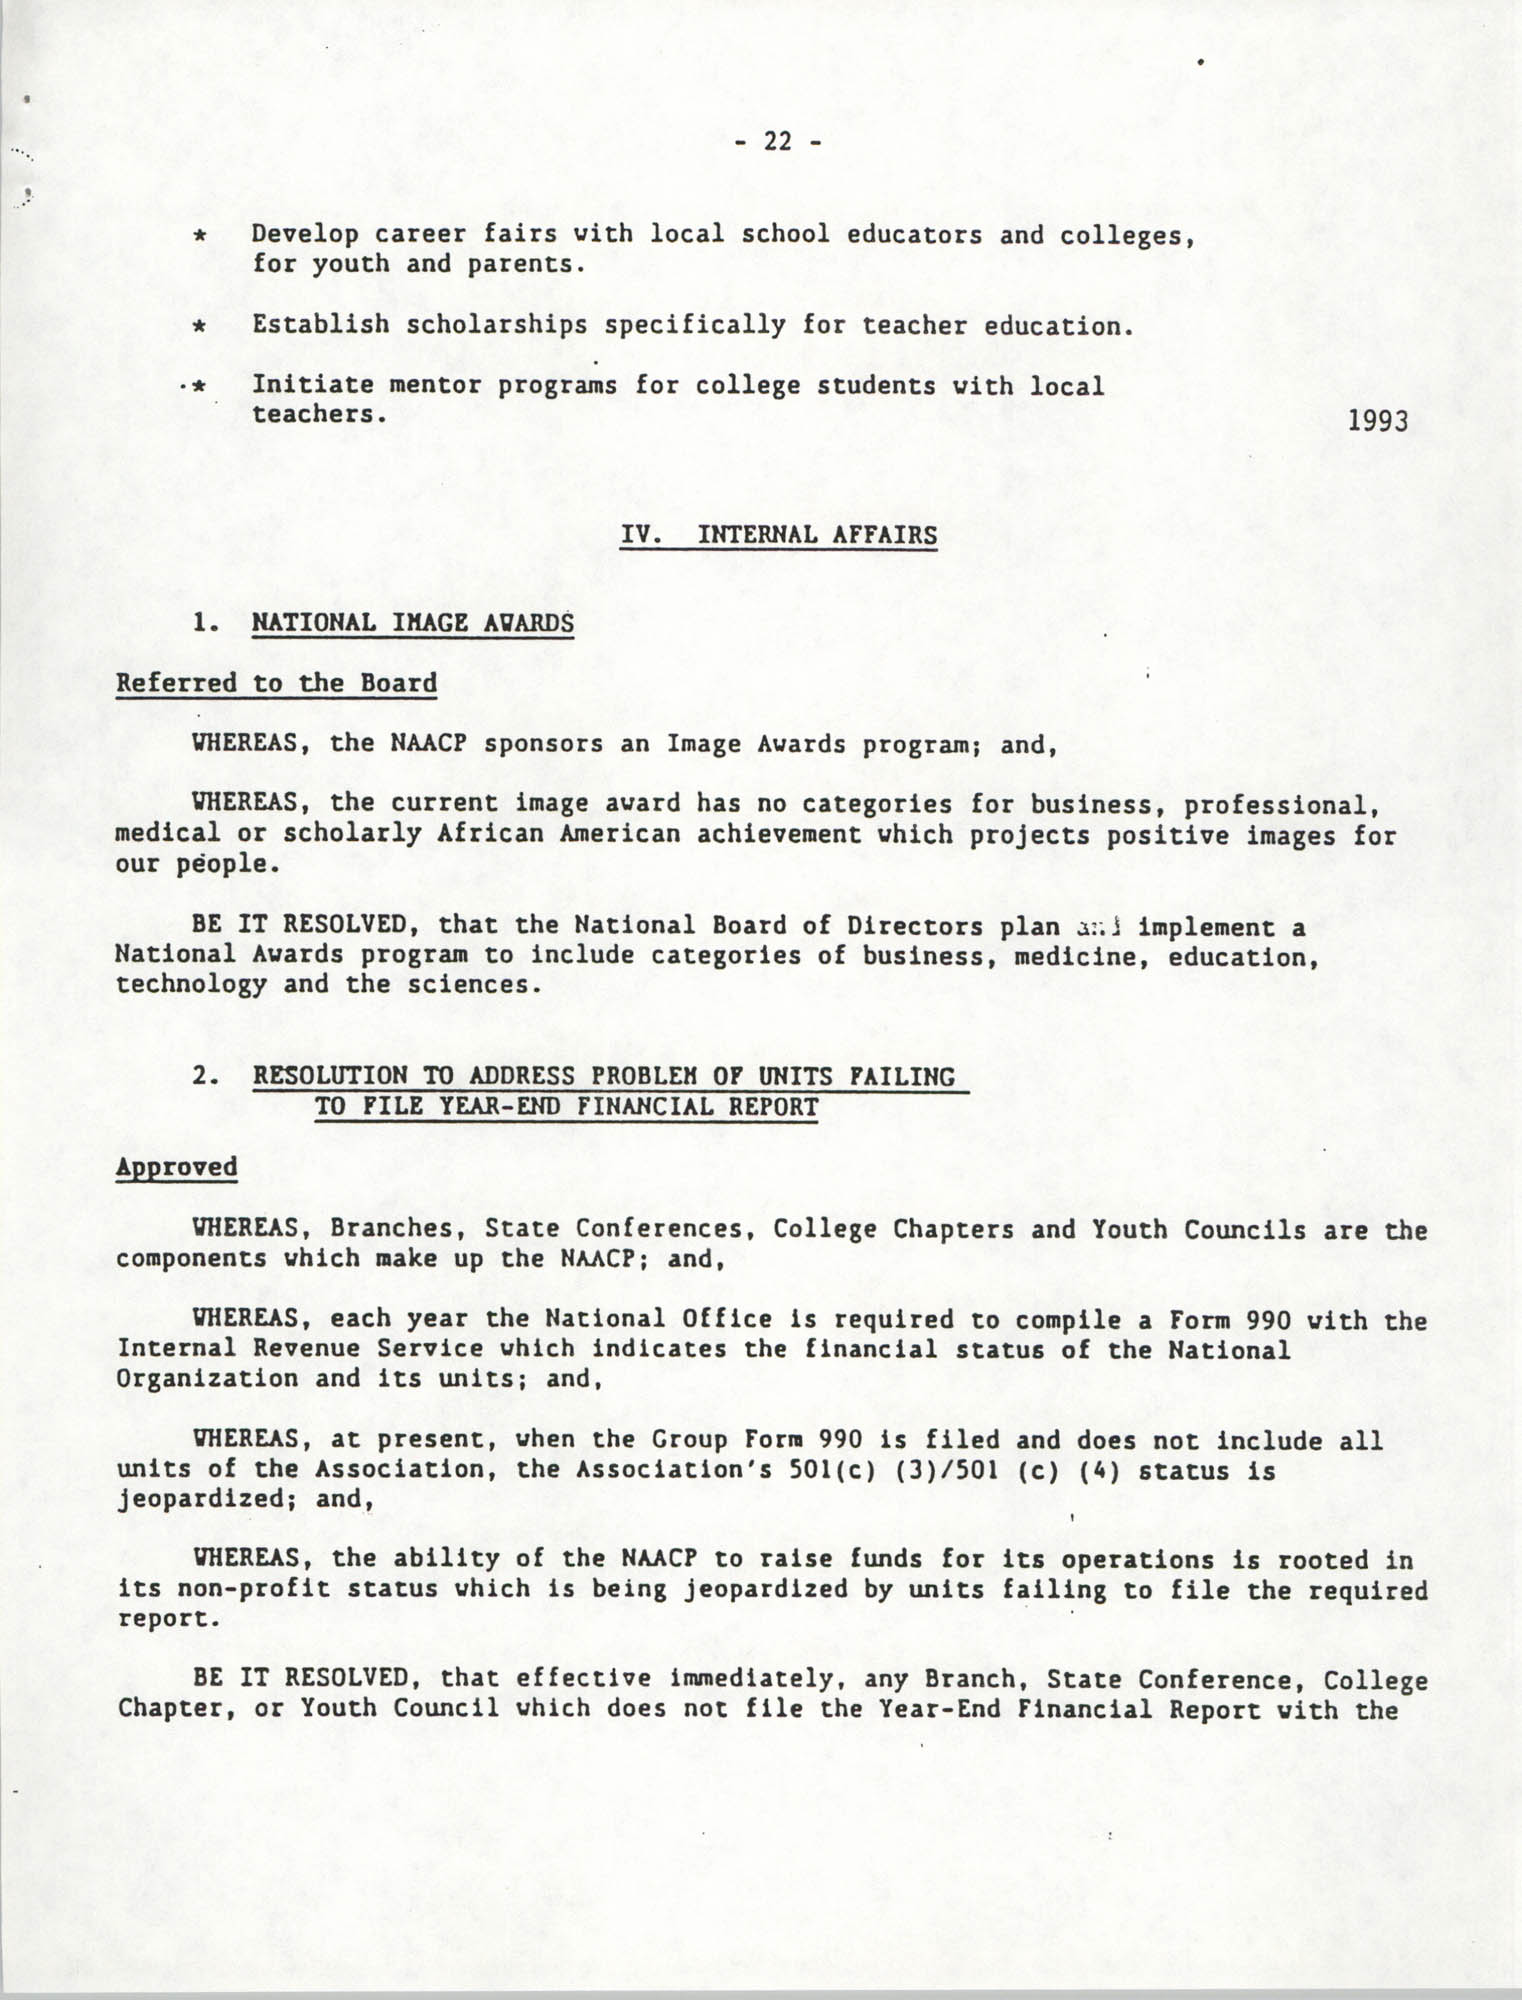 Education Resolutions 1993, Page 22